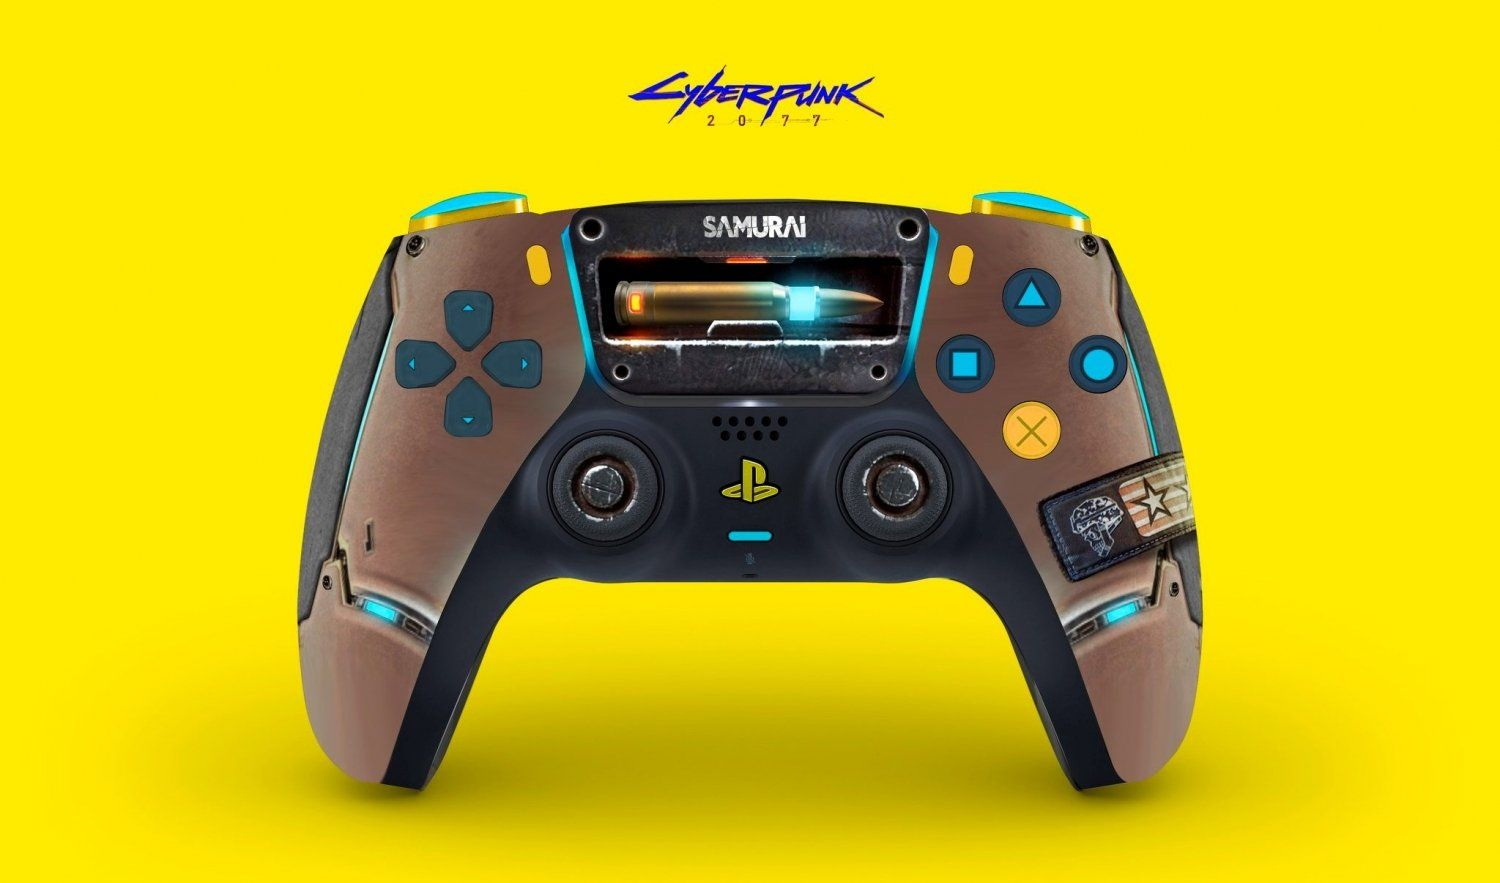 Check out this cyberpunk 2077 themed playstation 5